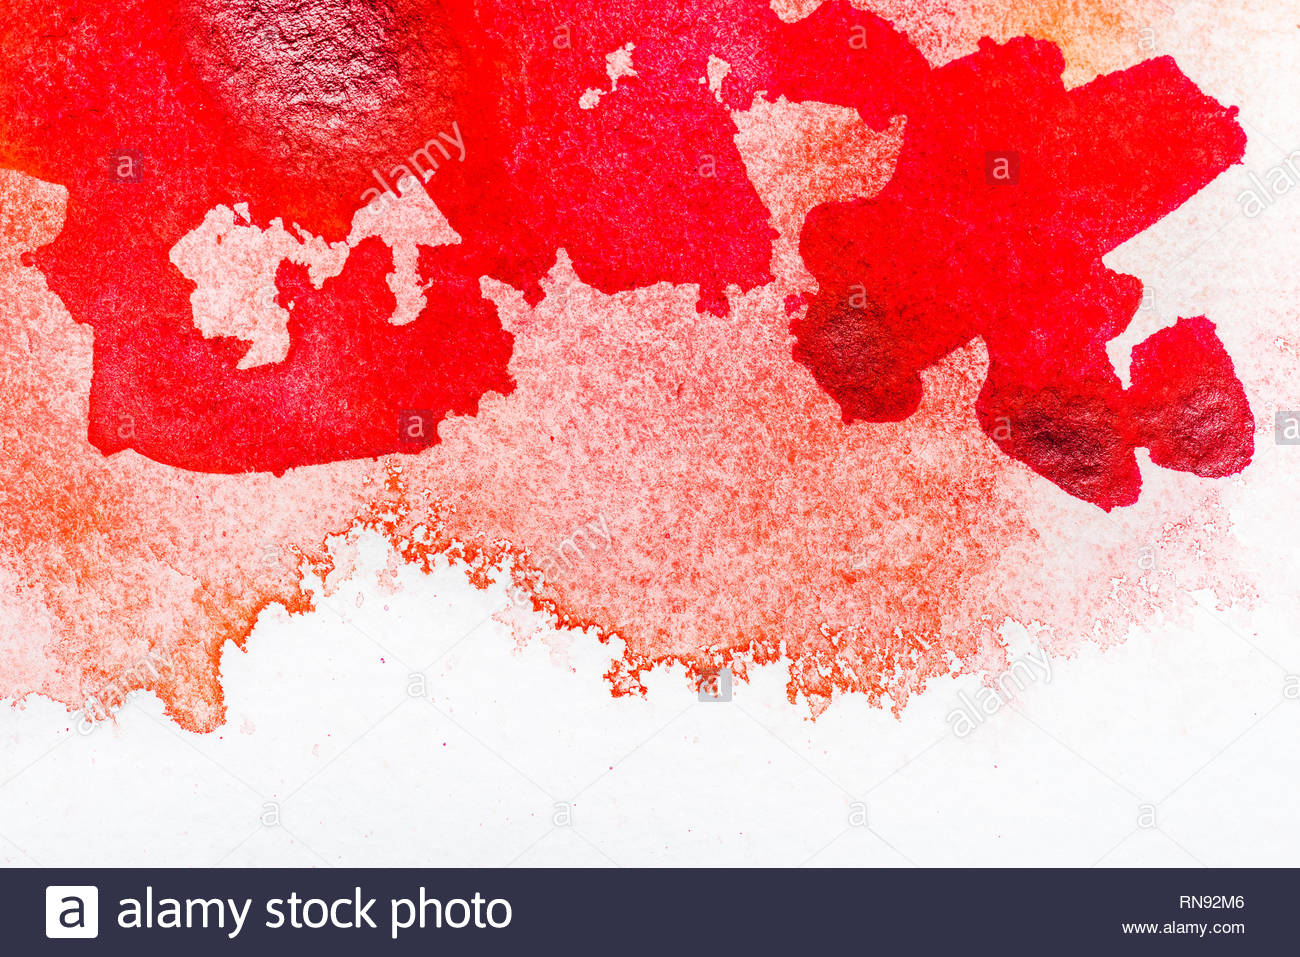 top view of red watercolor spill on white background with copy 1300x957